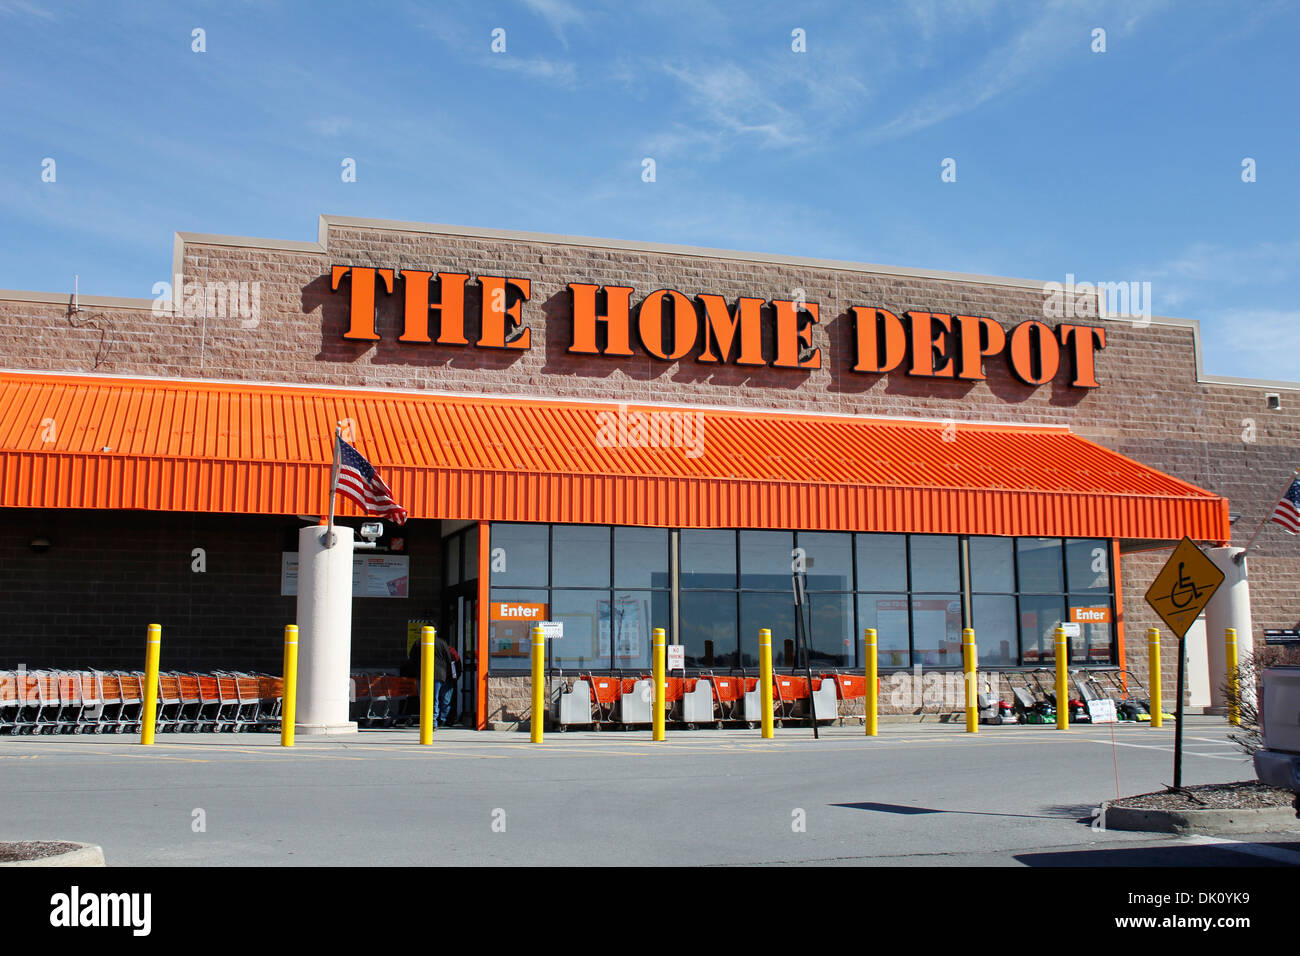 The home depot store front stock photo 63331277 alamy for Shop home depot